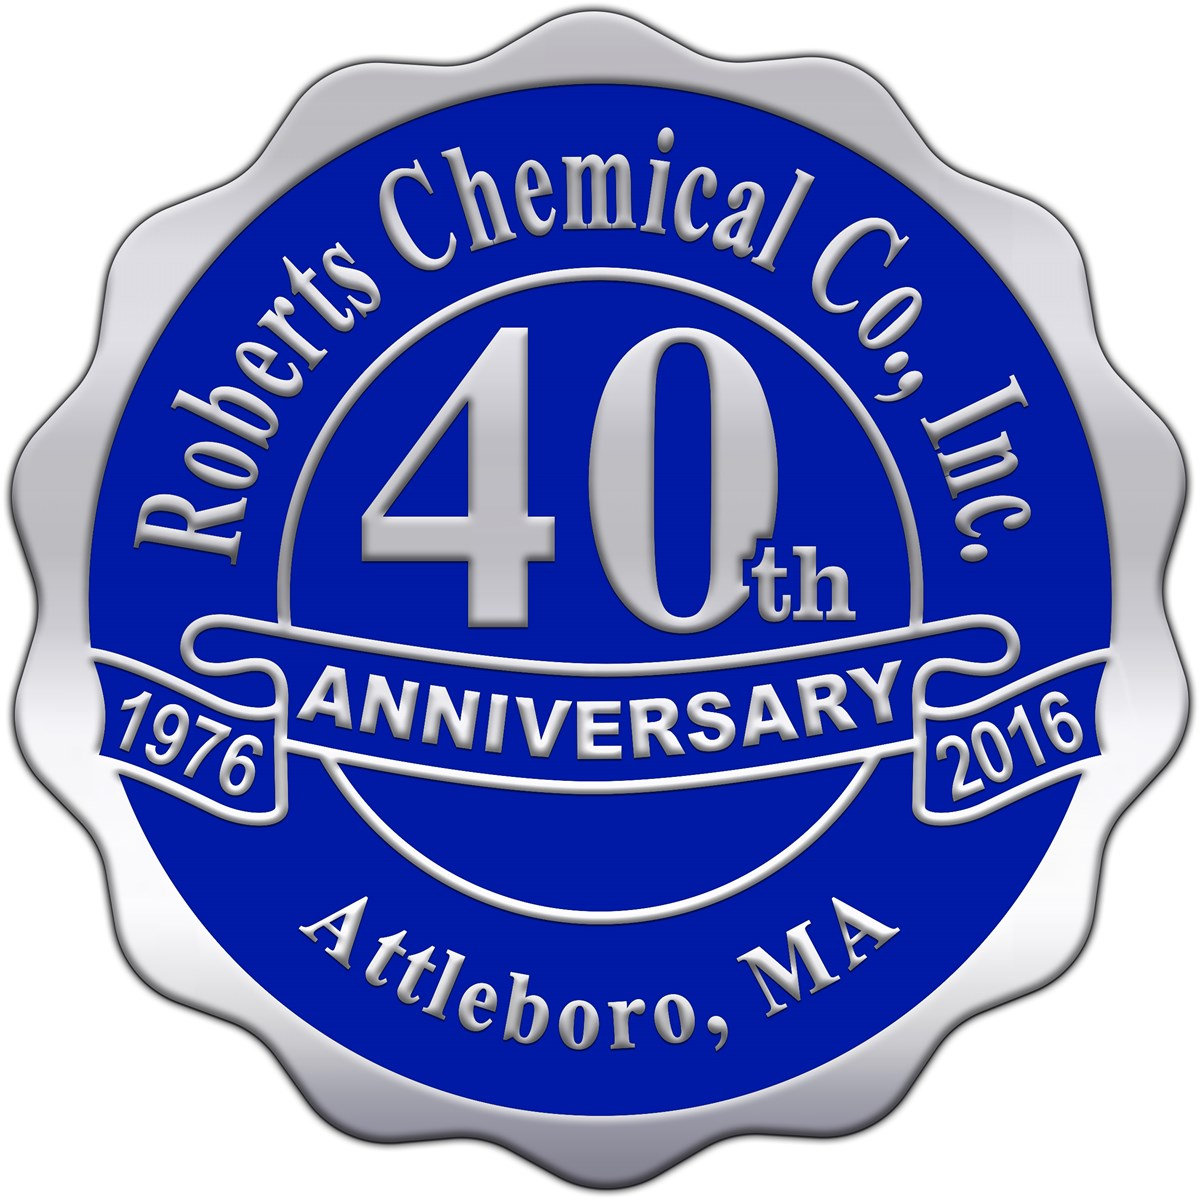 Roberts Chemical News